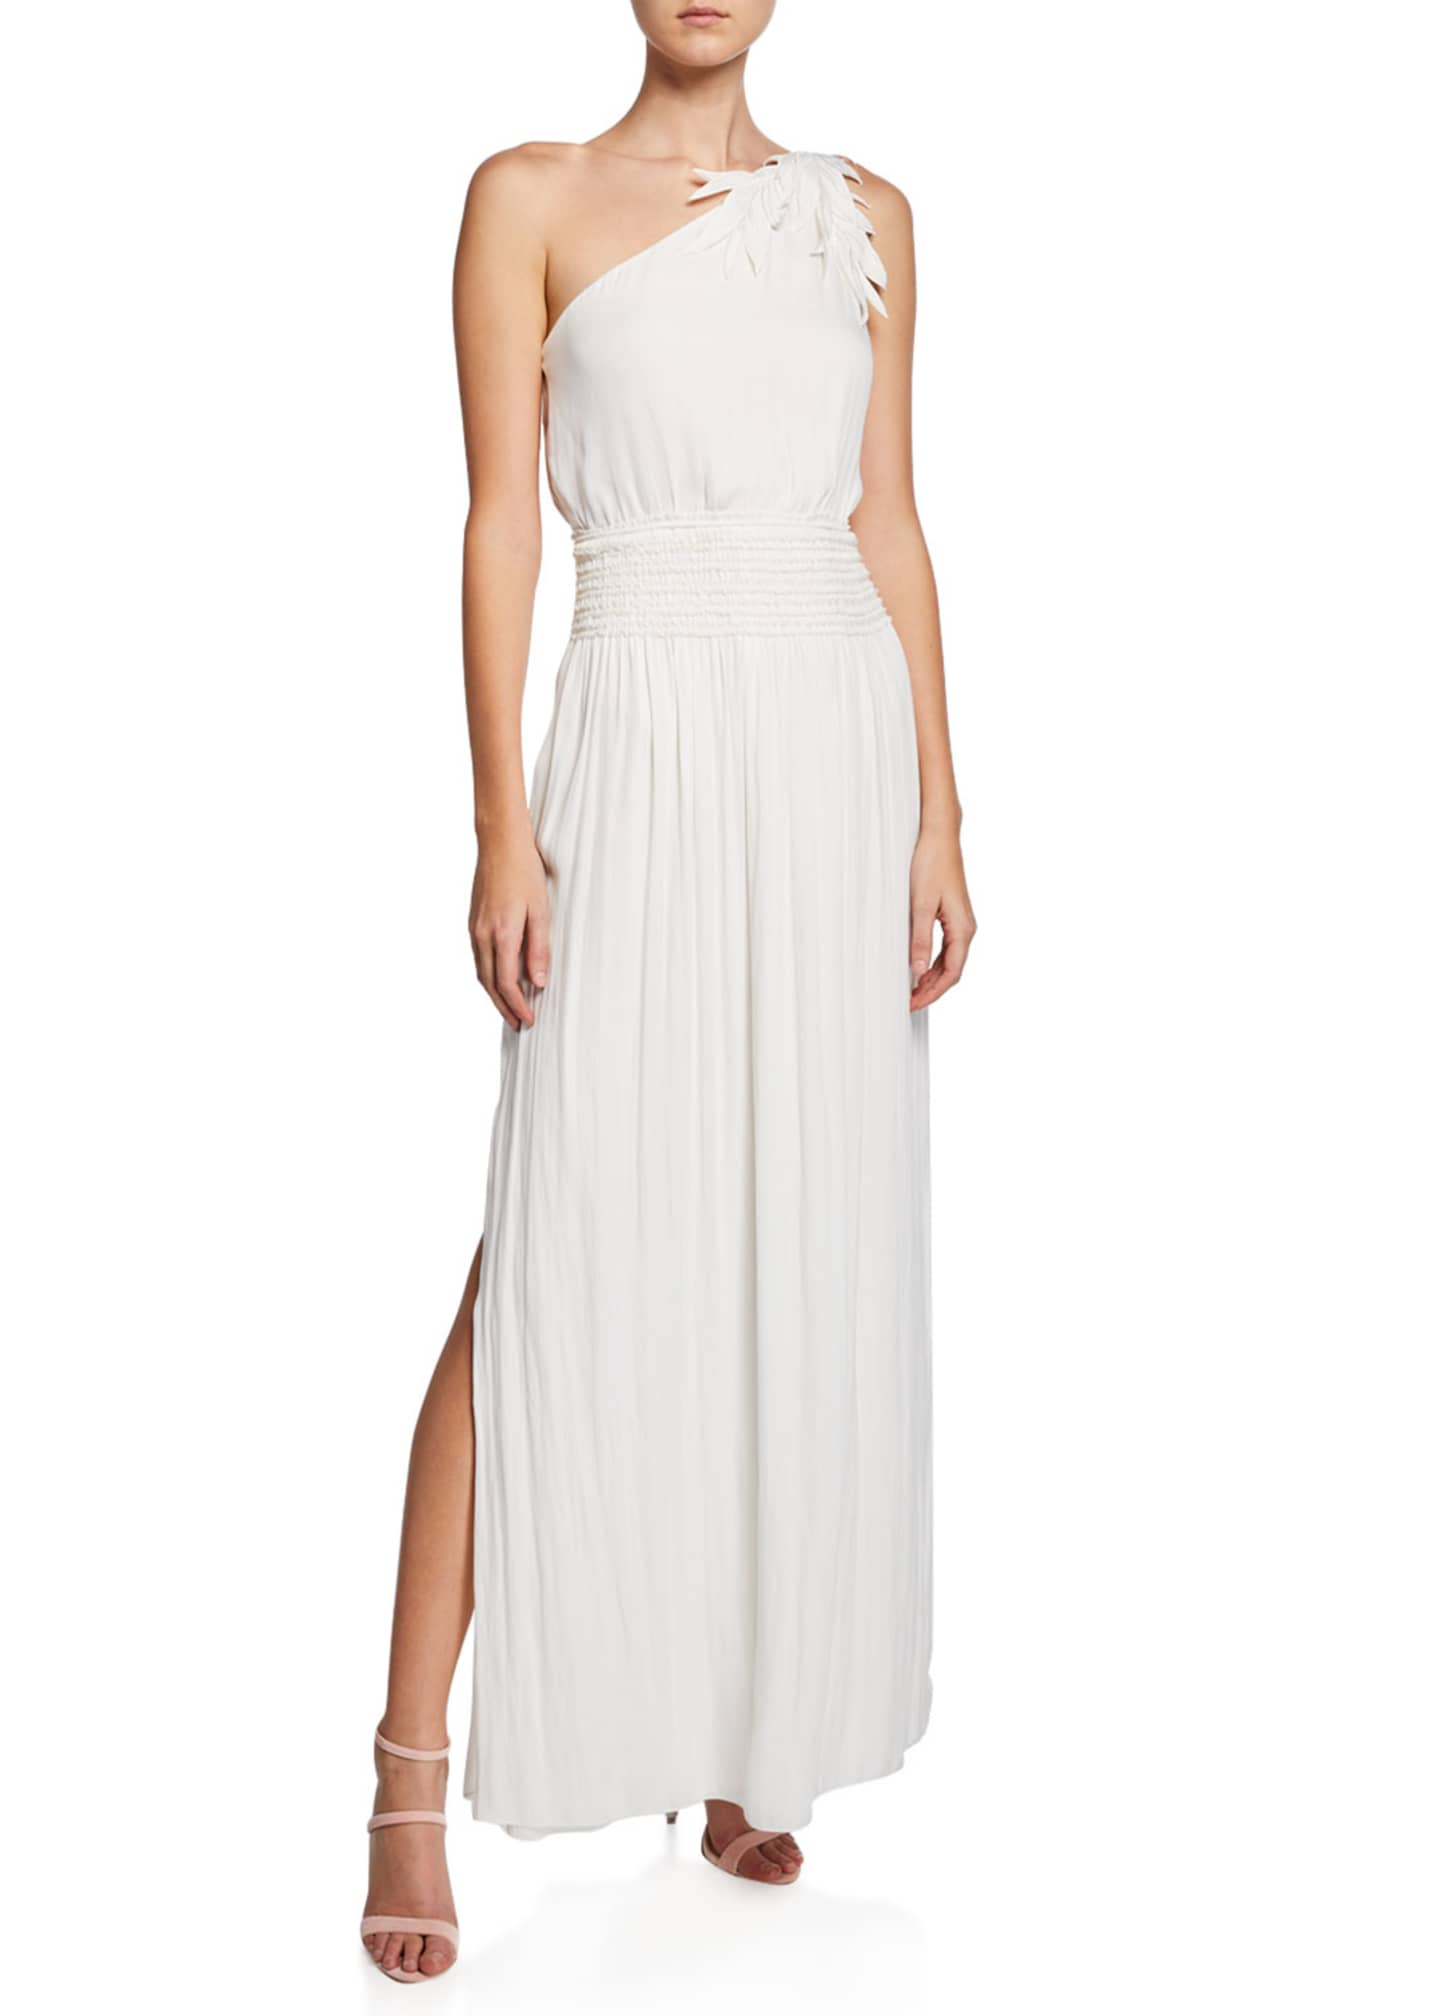 Halston One-Shoulder Smocked-Waist Gown with Floral Applique